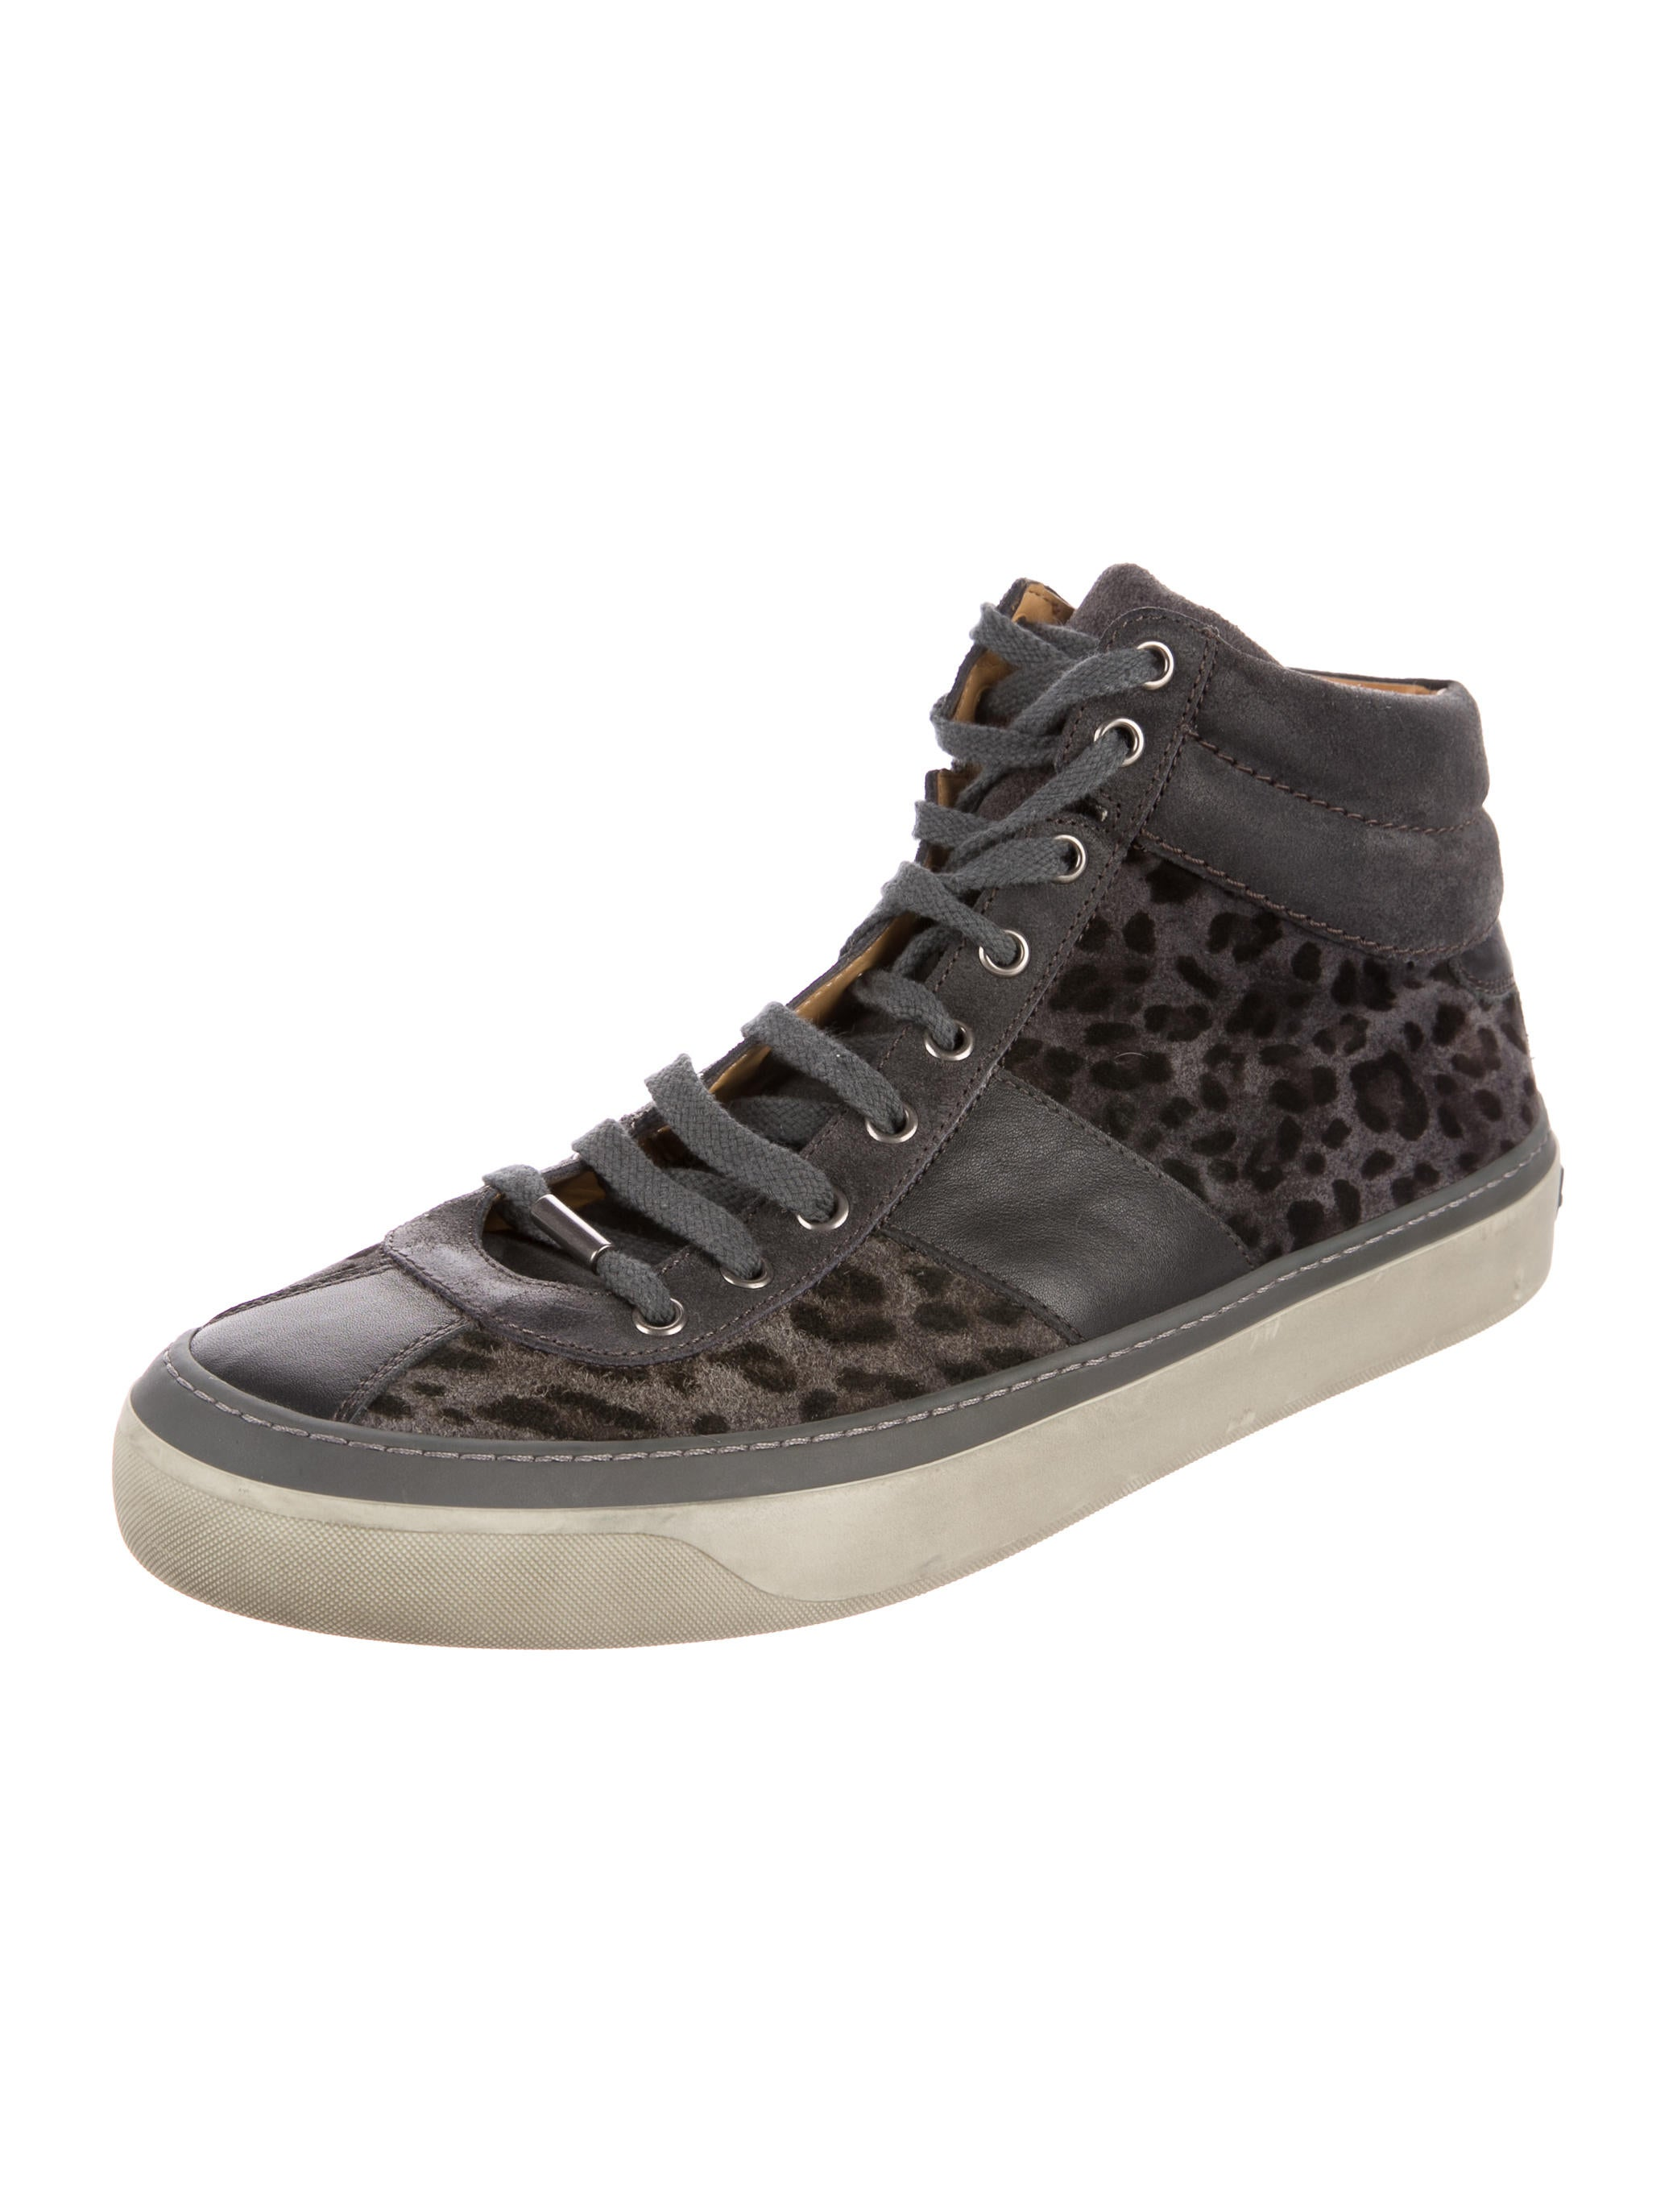 jimmy choo leopard print high top sneakers shoes jim72844 the realreal. Black Bedroom Furniture Sets. Home Design Ideas